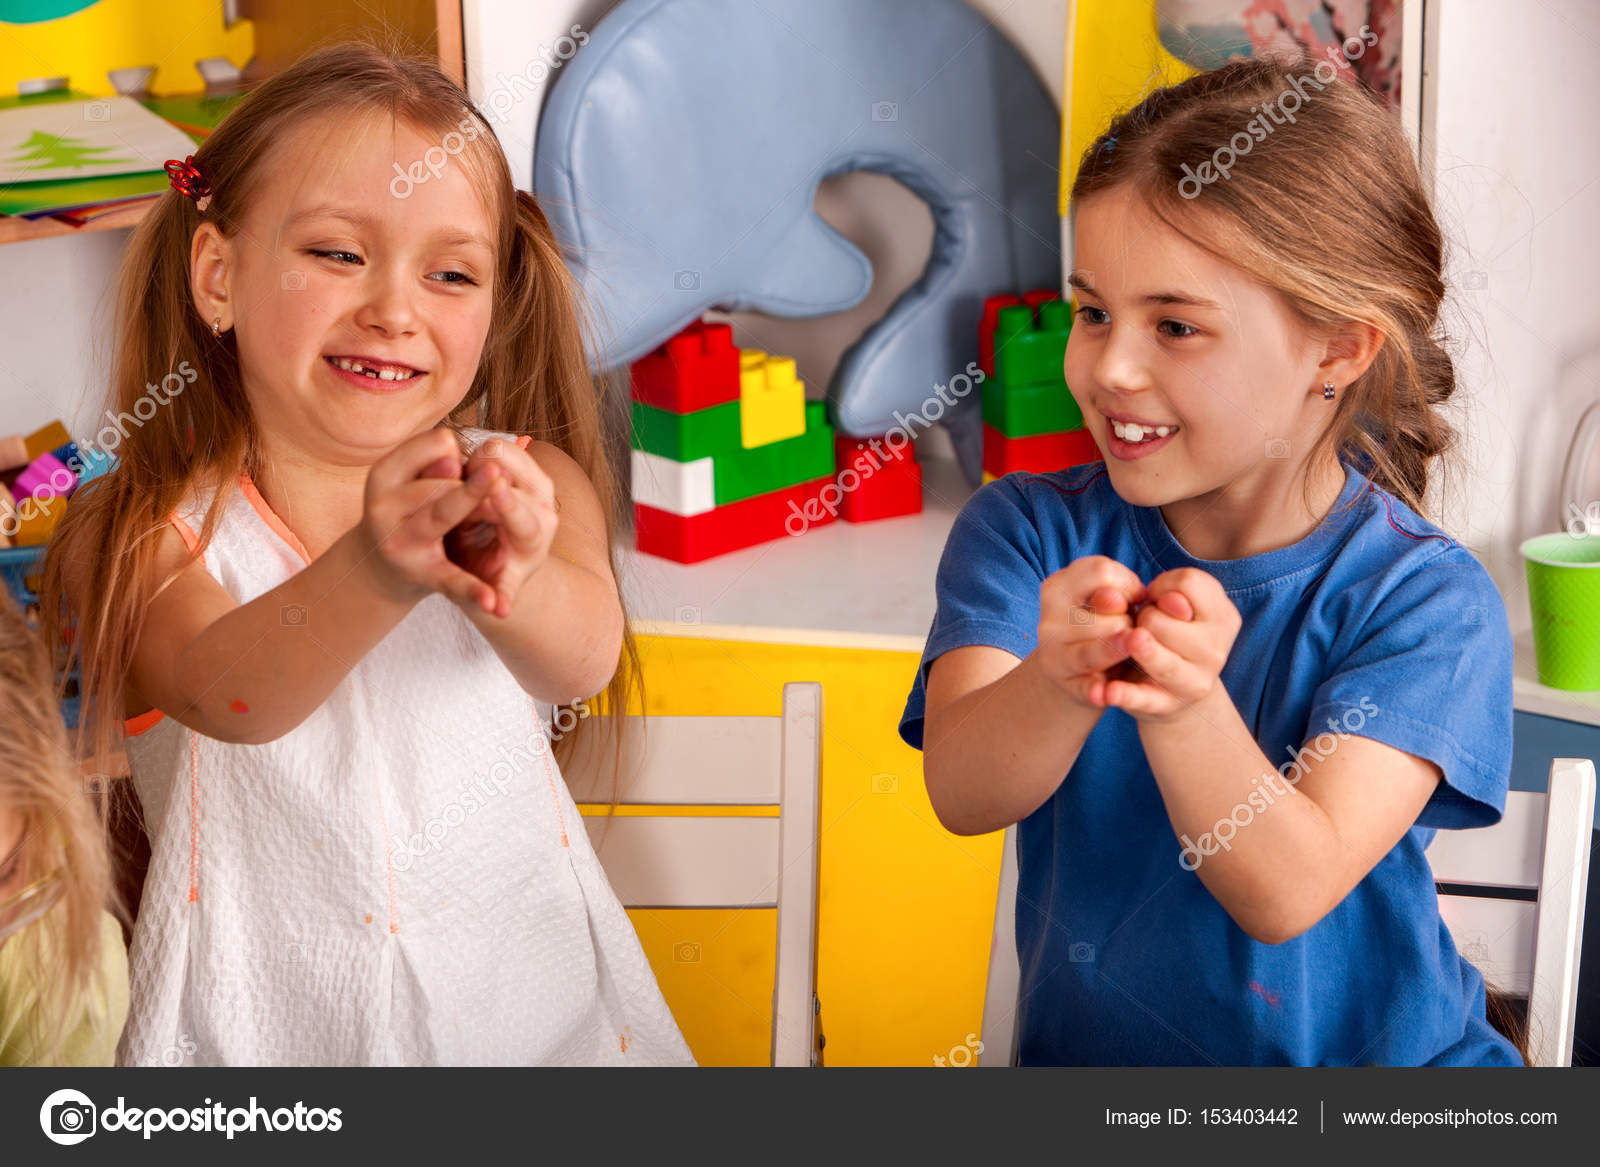 Finger Game On Break School In Painting Class Small Student In Art Class Physical Education Of Little Girls Playing Craft Drawing Develops Creative